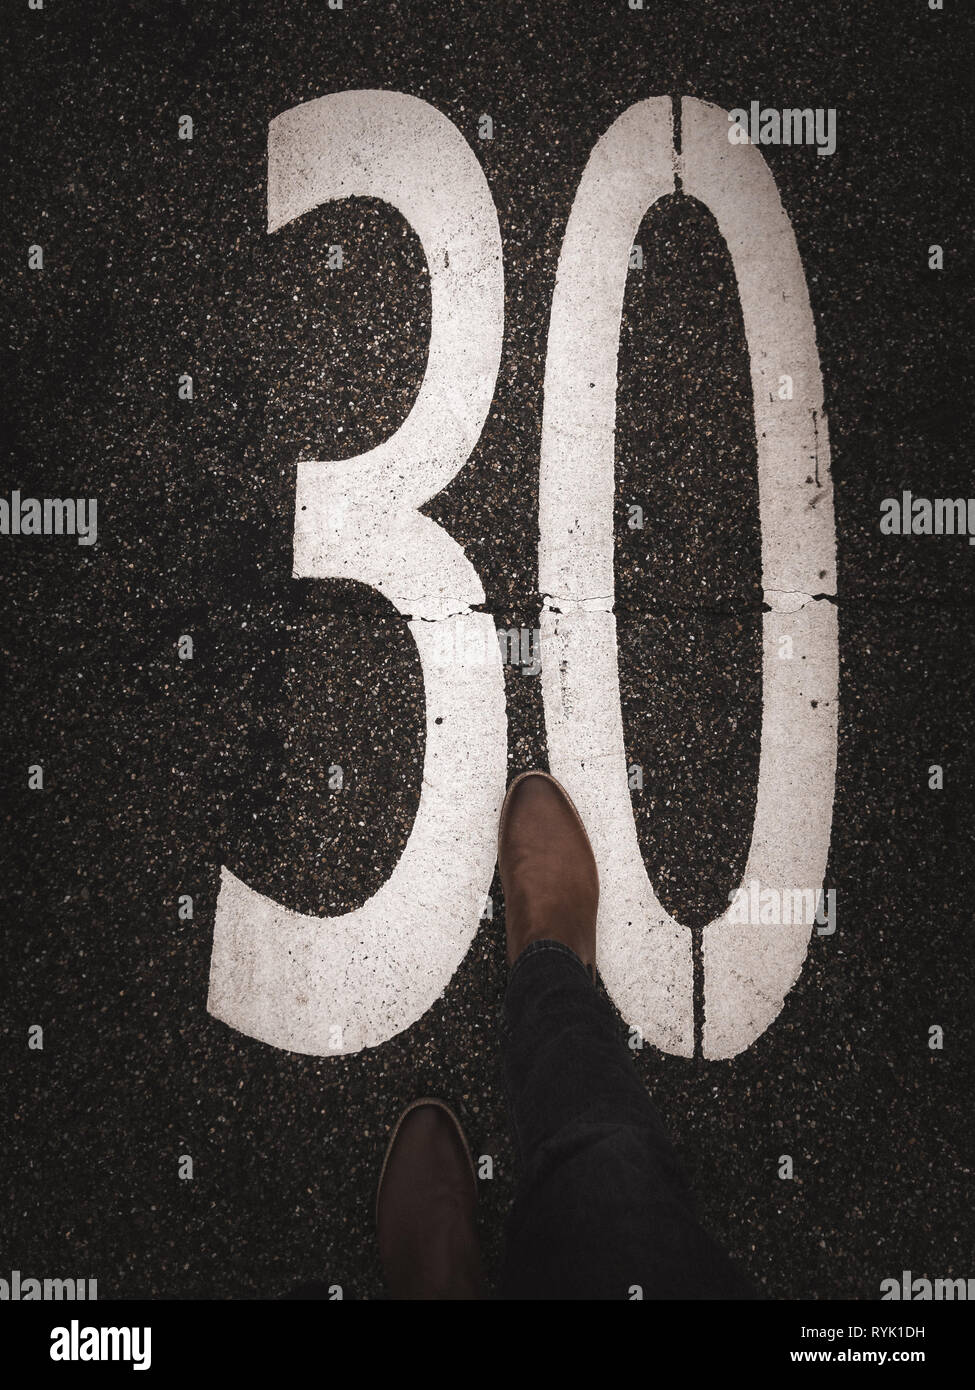 30 zone marking on pavement with leather shoe - Stock Image